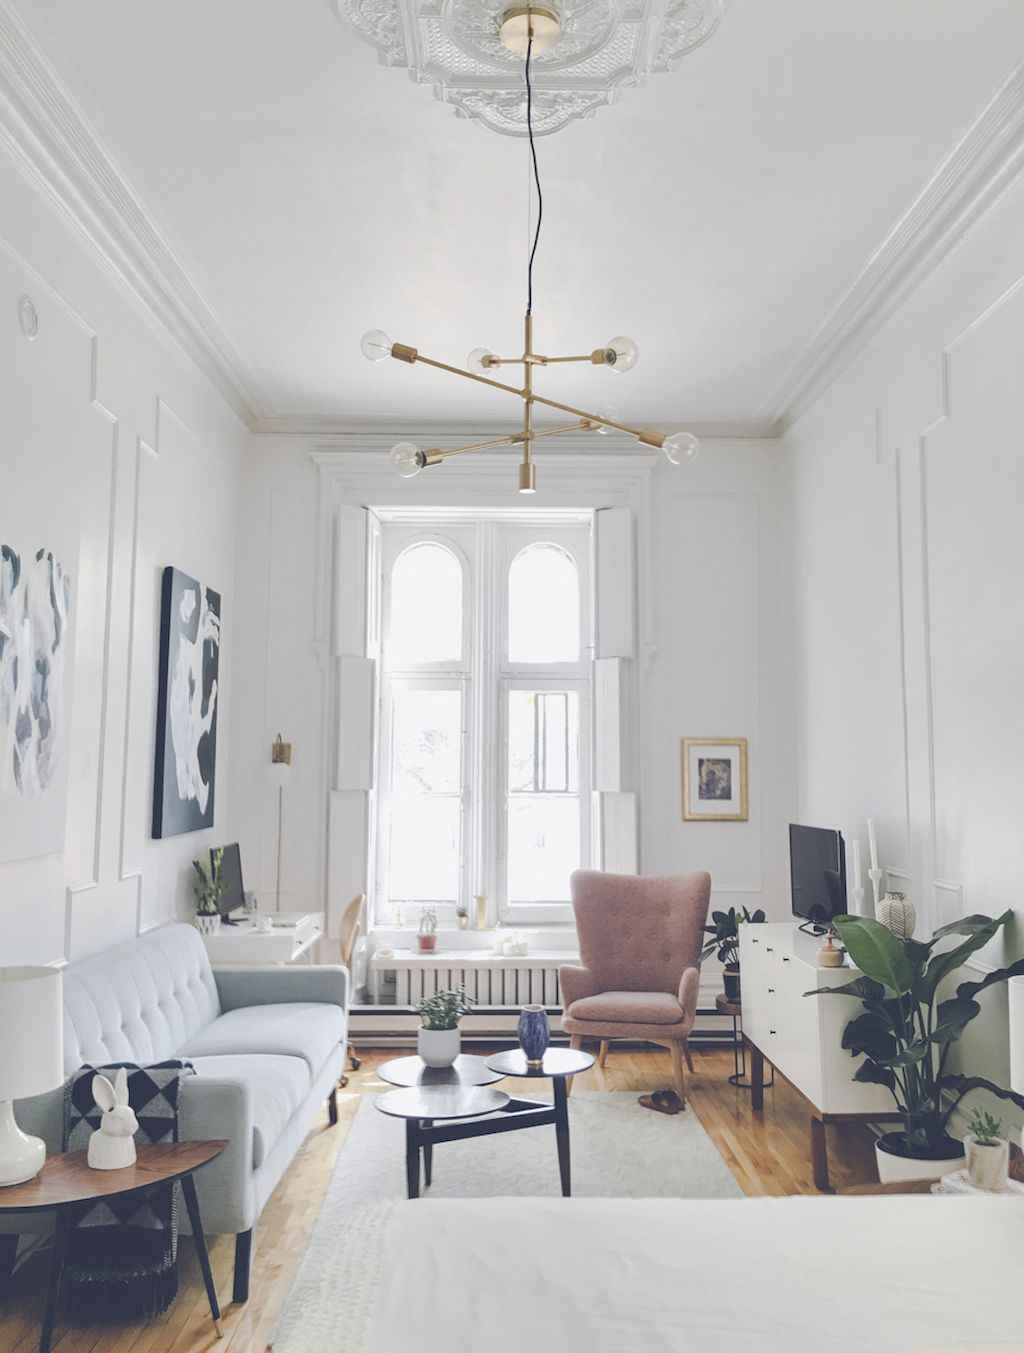 Cool small apartment decorating ideas on a budget (31)